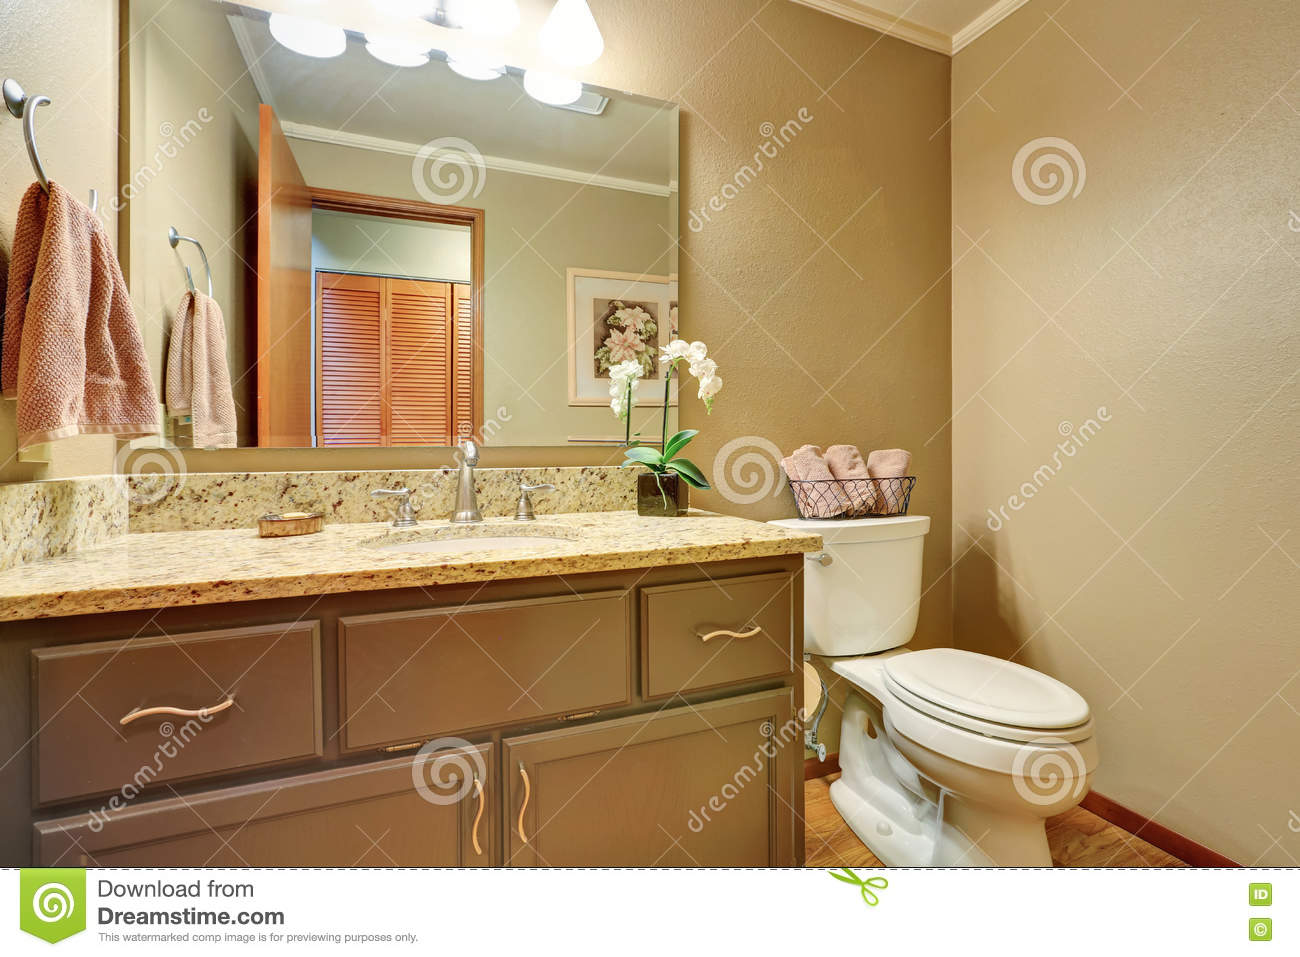 American classics bathroom vanities - American Classic Half Bathroom With Vanity Cabinet And A Toilet Stock Photo